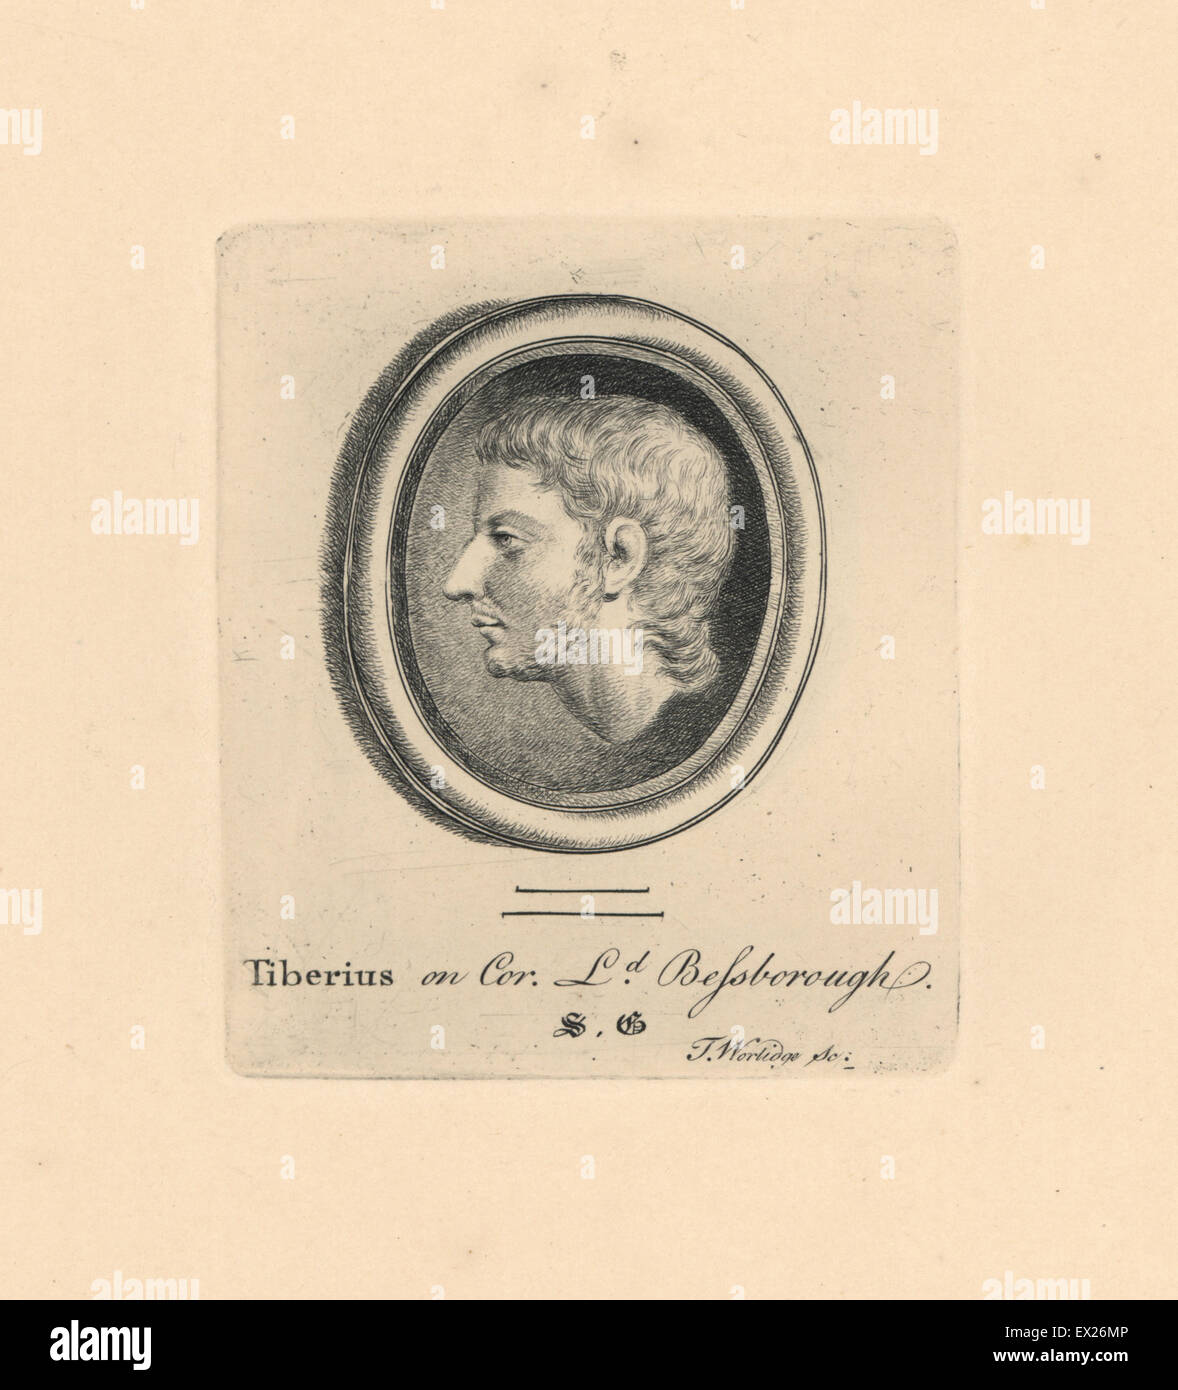 Portrait of Tiberius Caesar, Roman Emperor, on cornelian in the collection of Lord Bessborough. Copperplate engraving - Stock Image